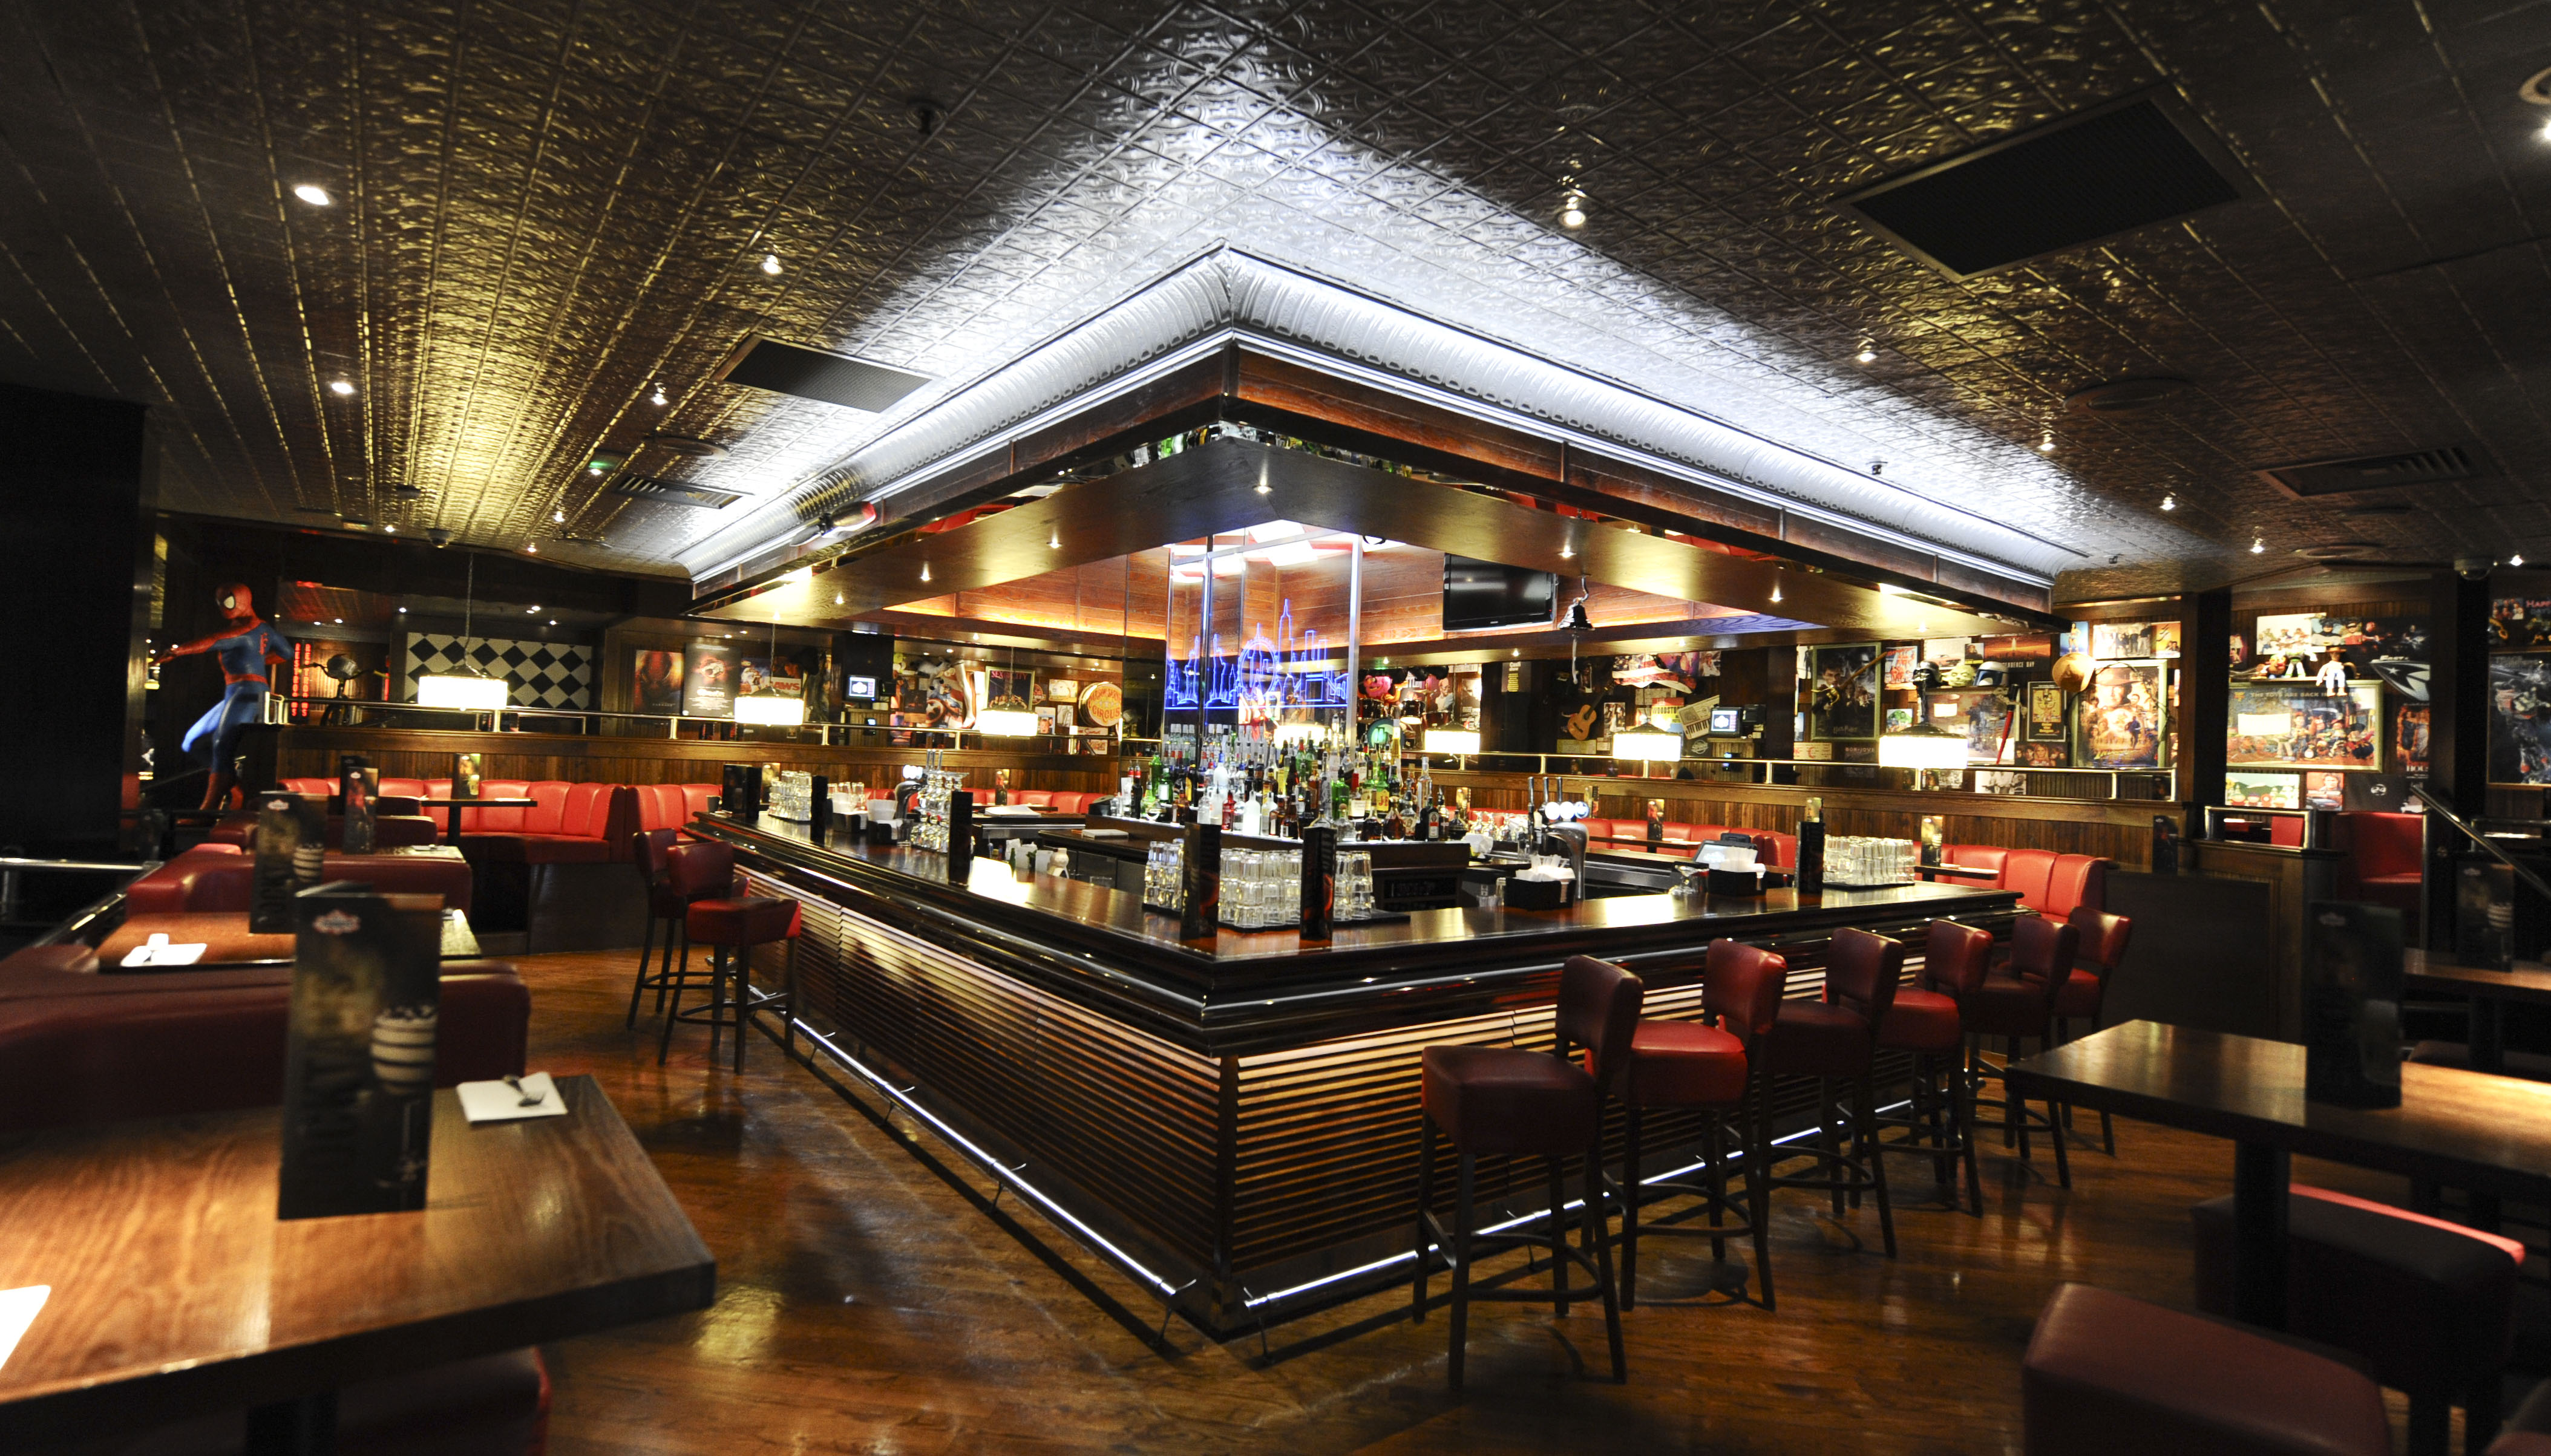 Reserve a table at TGI Fridays - Solihull